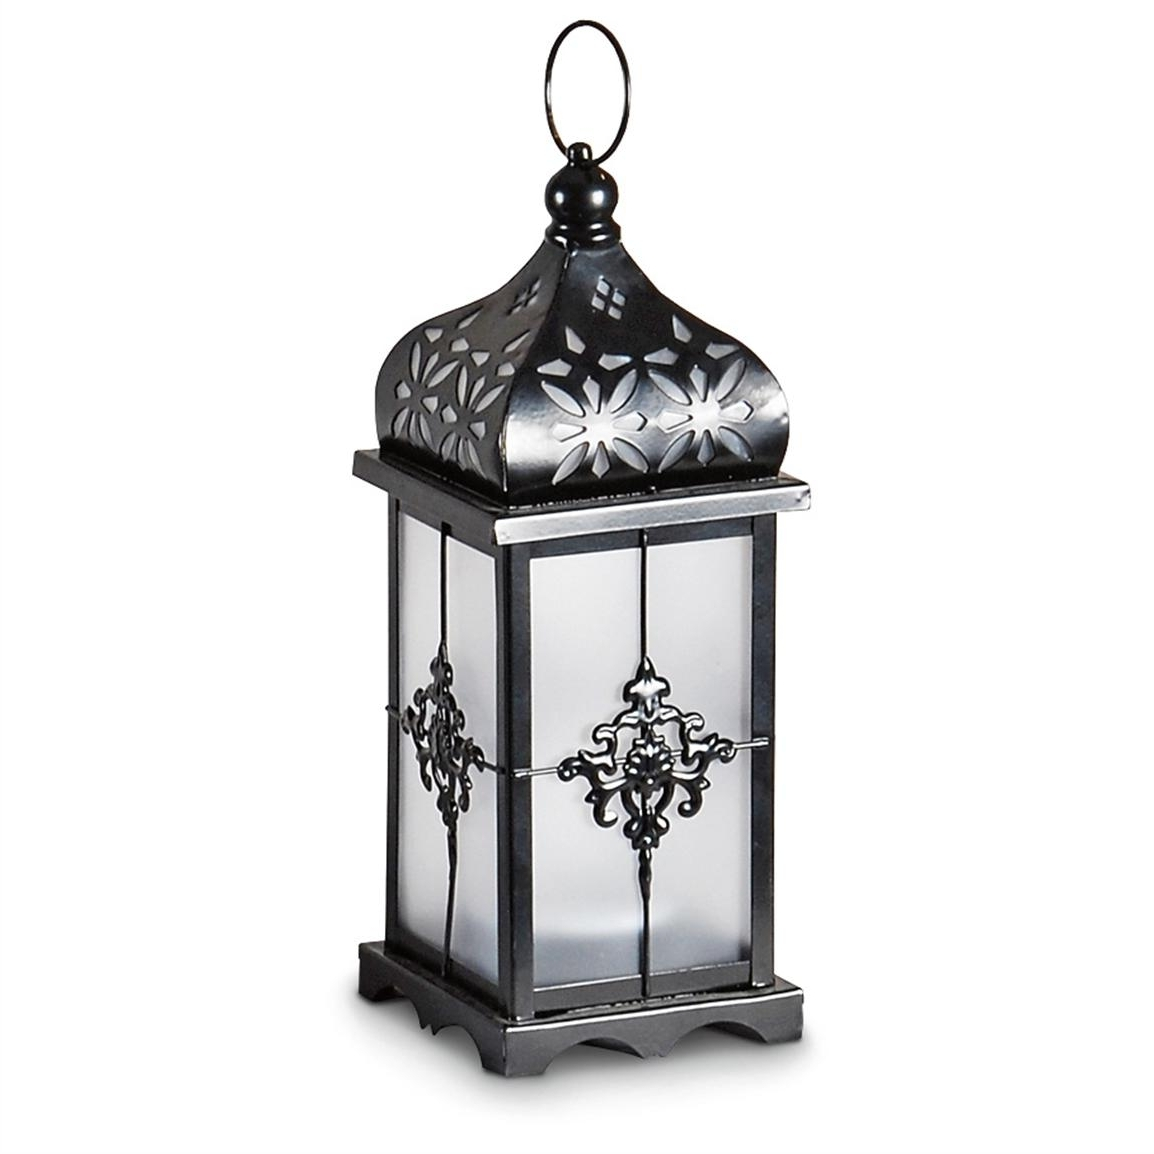 Outdoor Candle Lanterns For Patio Pertaining To Well Known 37 Patio Lanterns Canada, Castlecreek Solar Candle Lantern  (View 12 of 20)